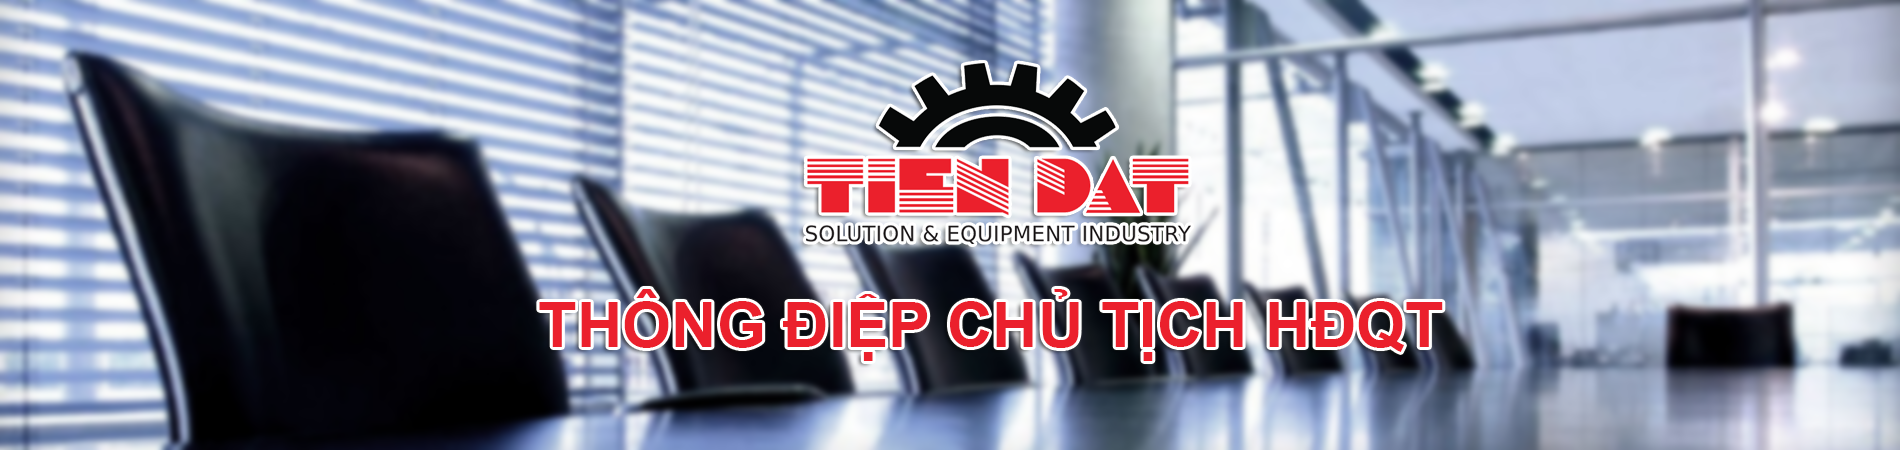 thong_diep_chutich_hdqt_tien_dat_corporation